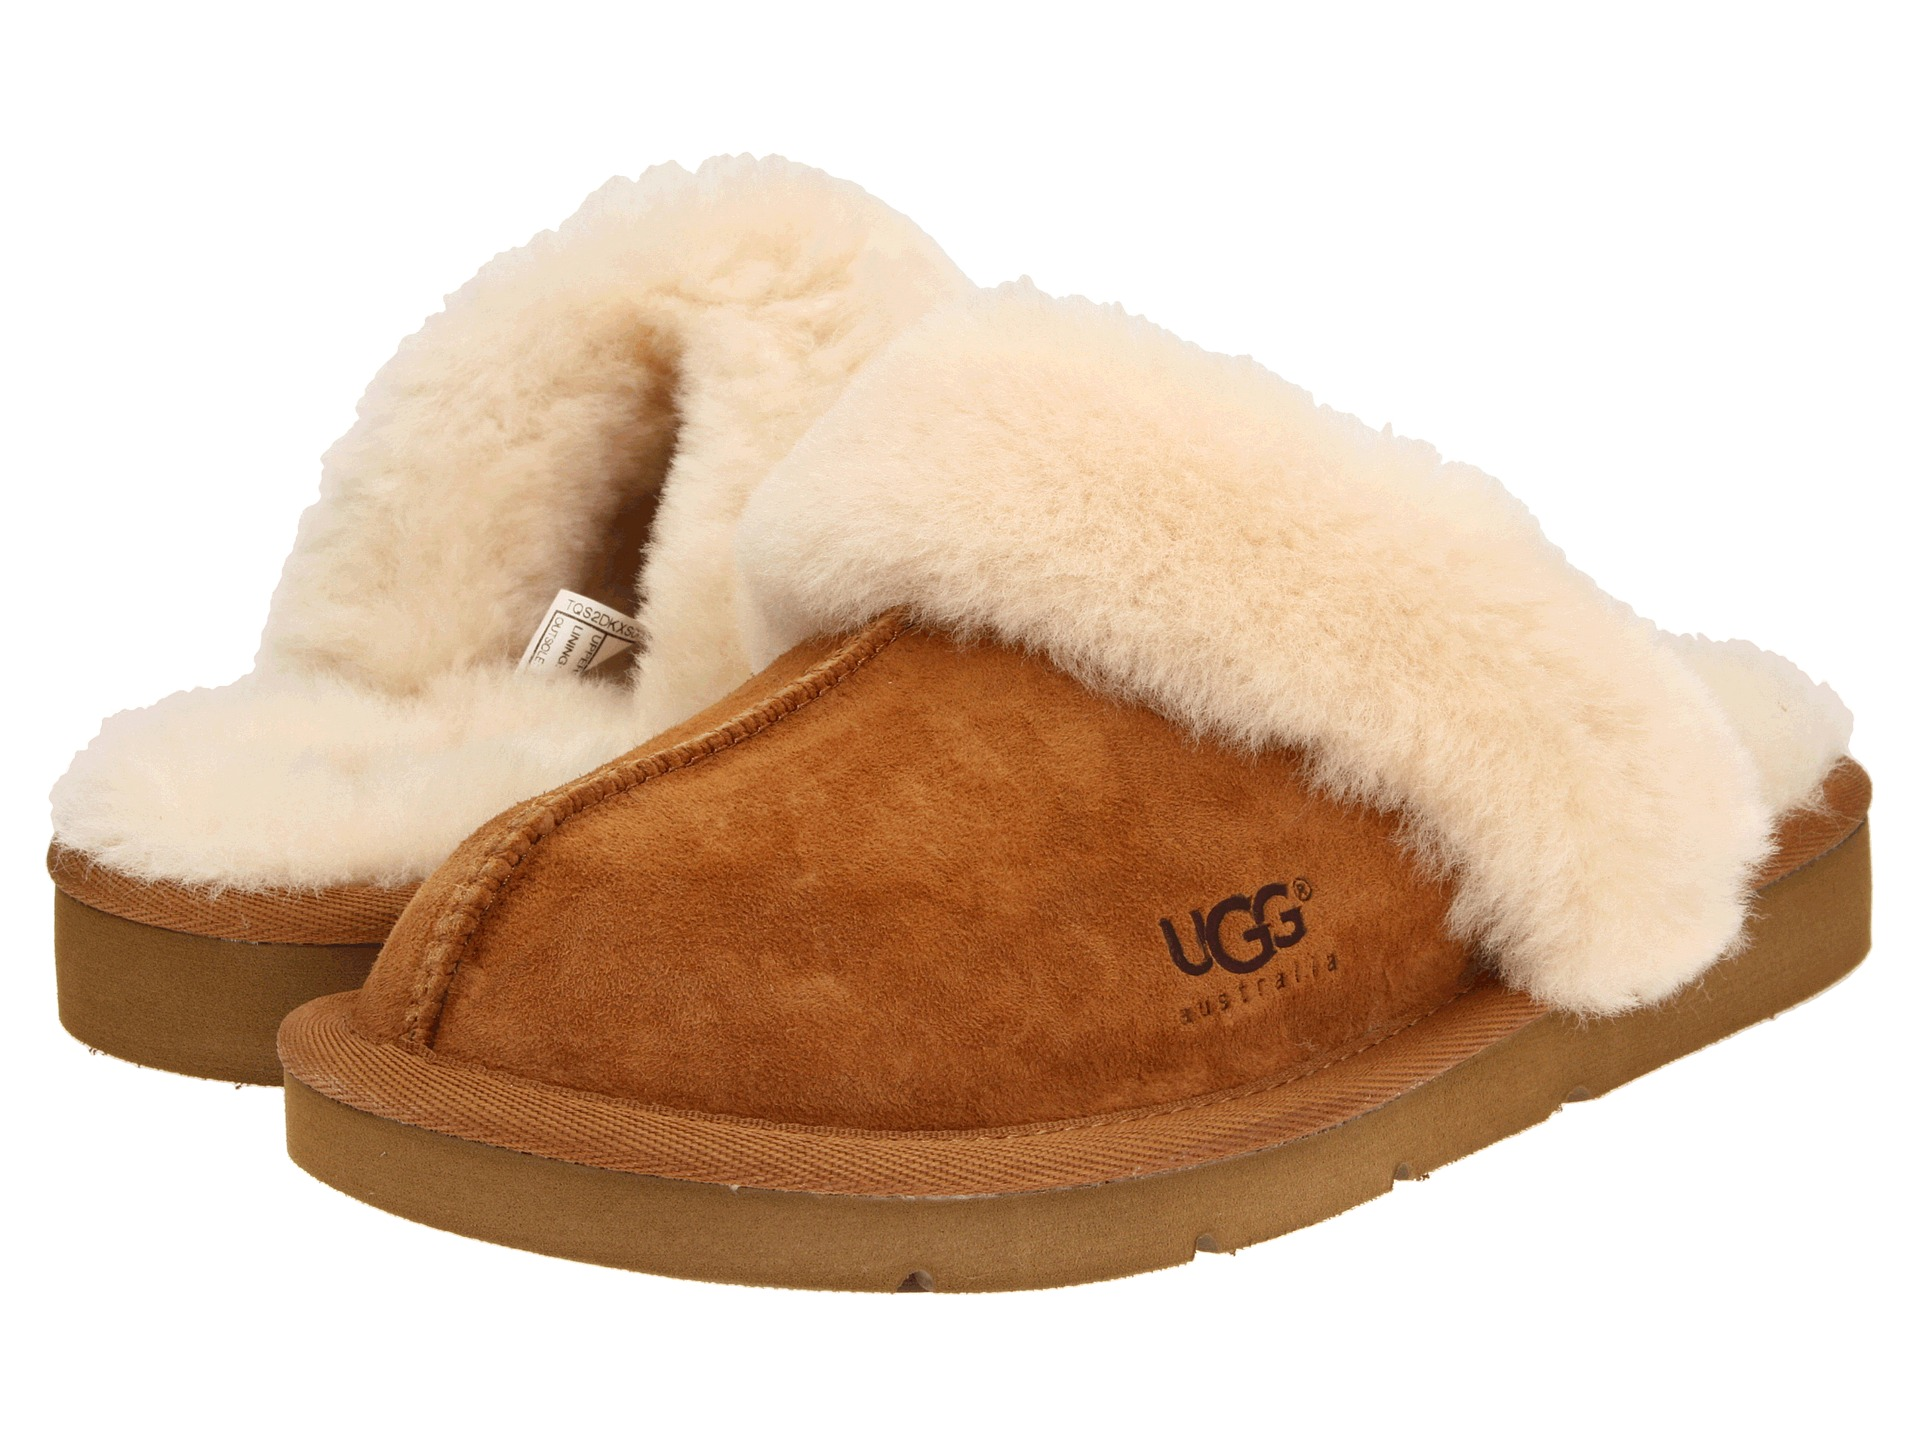 Shop for UGG Shoes for Women, Men & Kids | Dillard's at bushlibrary.ml Visit bushlibrary.ml to find clothing, accessories, shoes, cosmetics & more. The Style of Your Life.